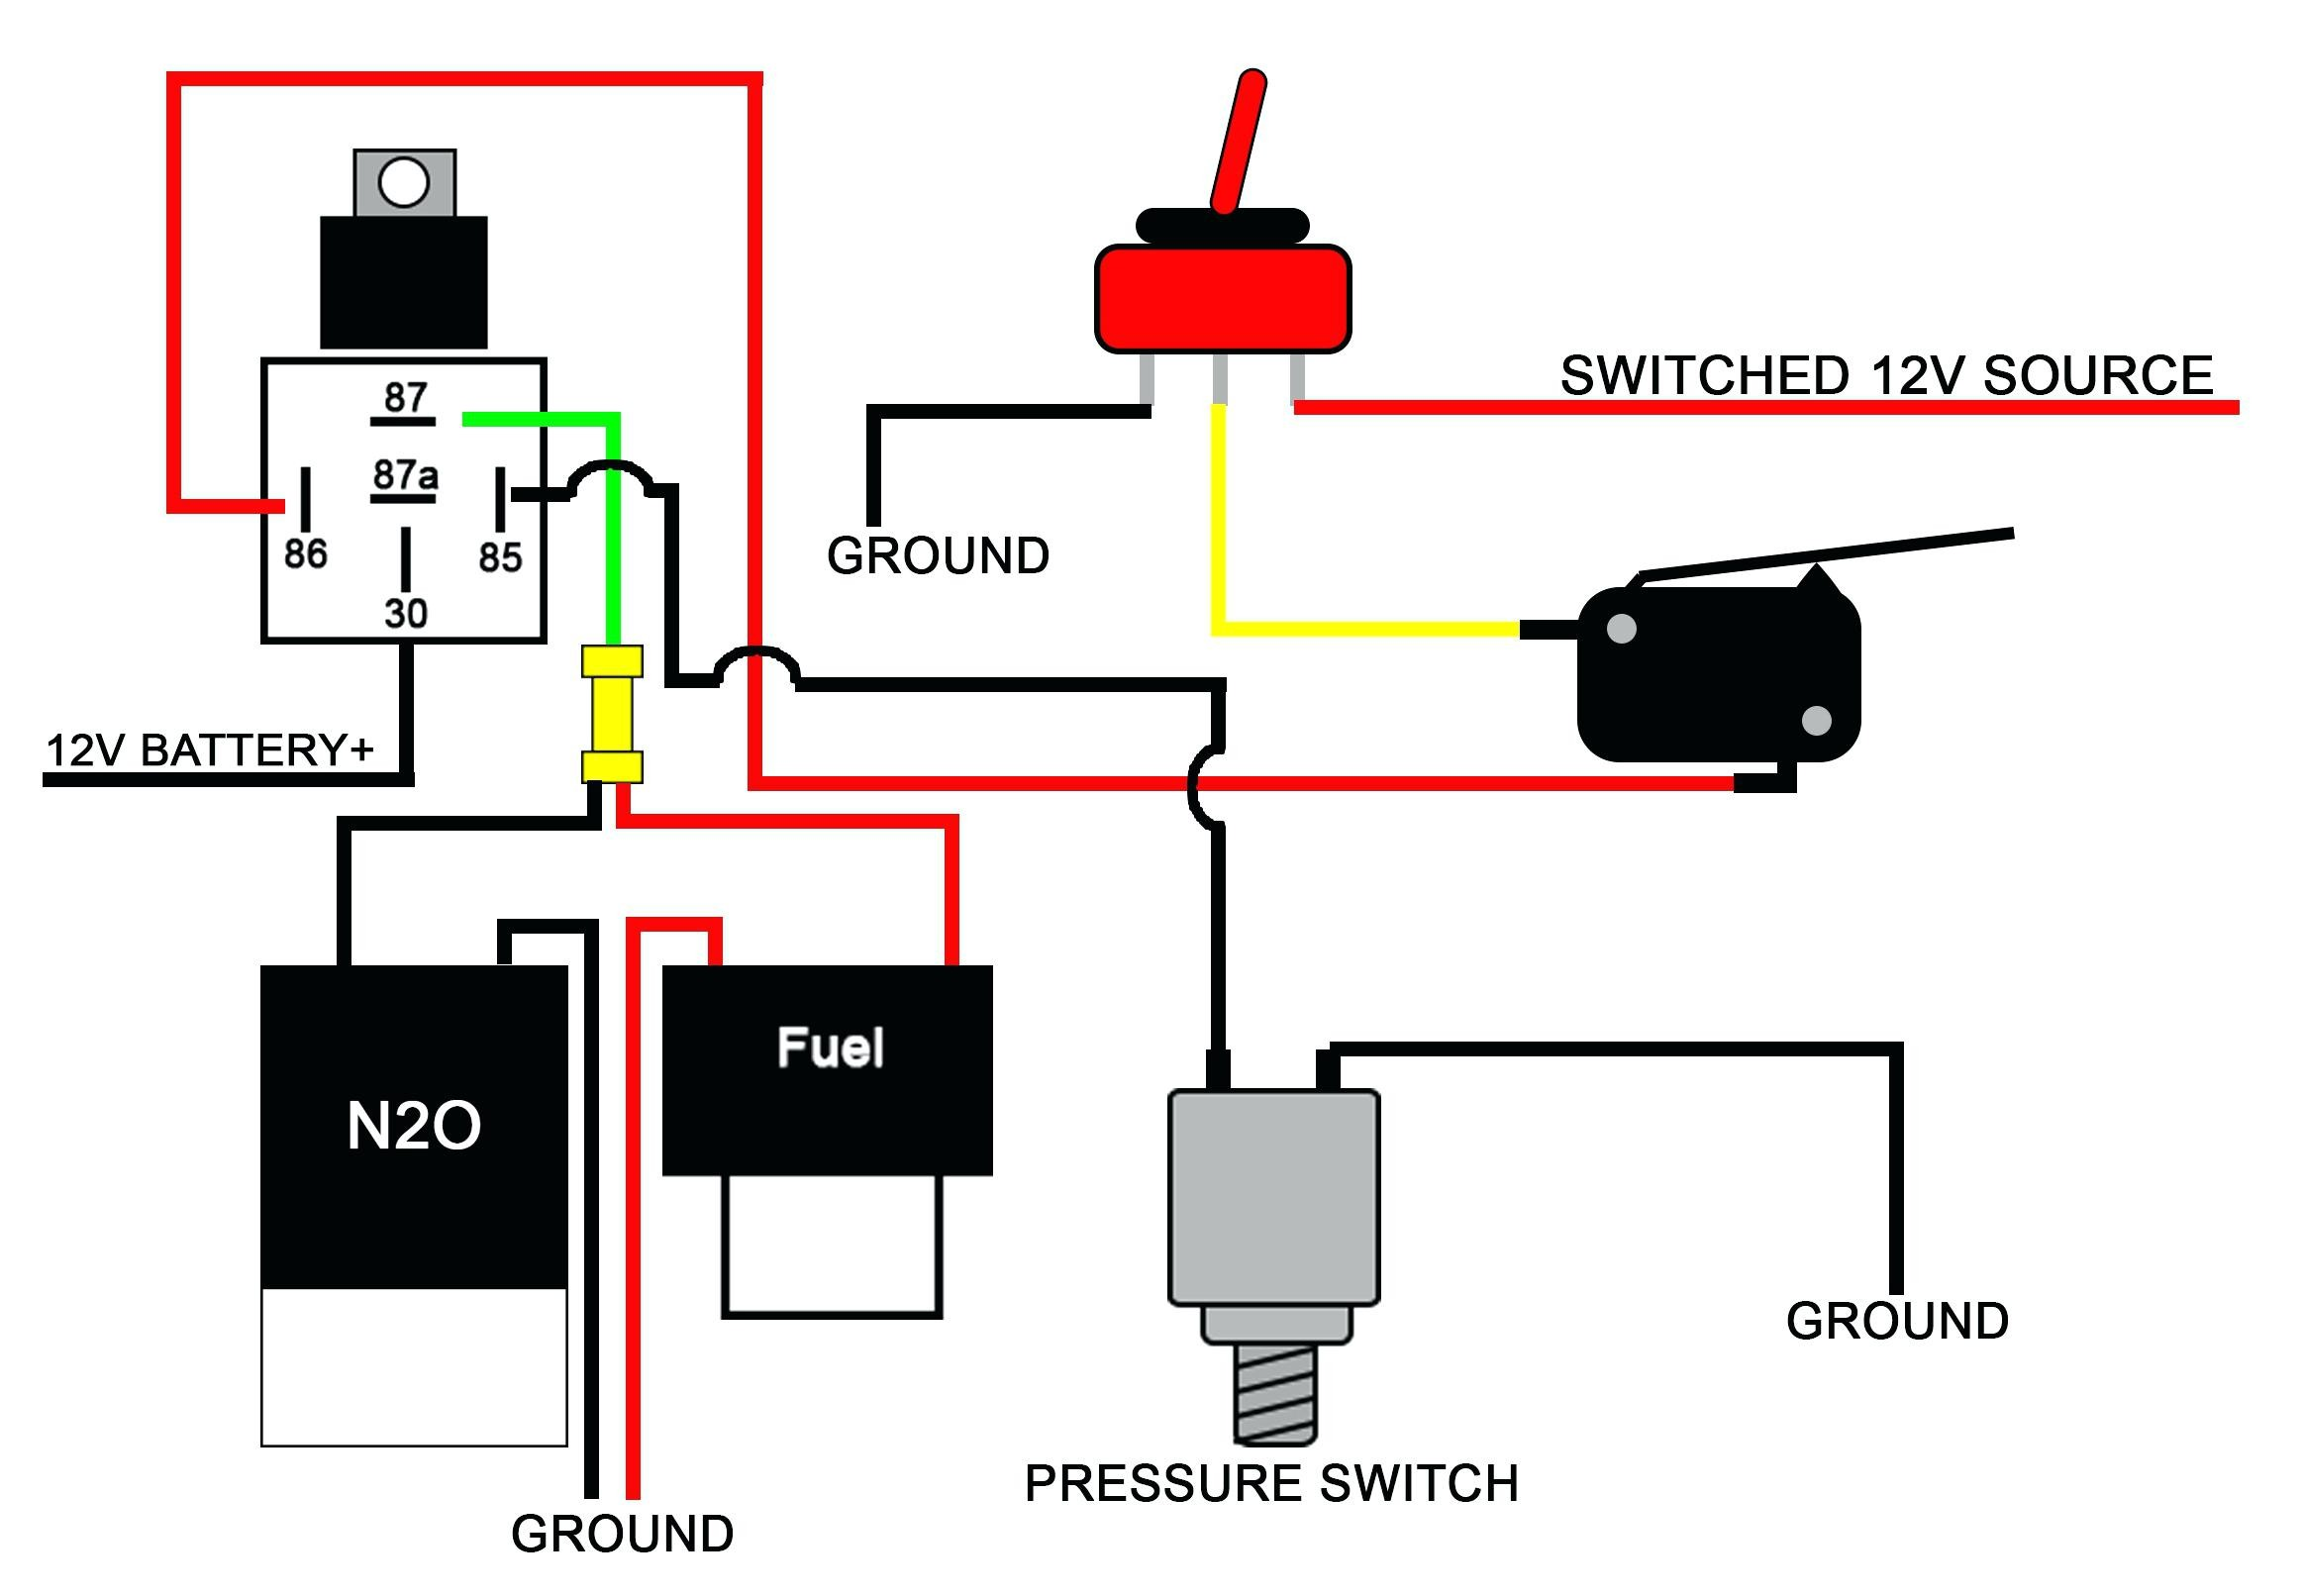 220 volt well pump wiring diagram pressure switch for and at archived on wiring diagram category